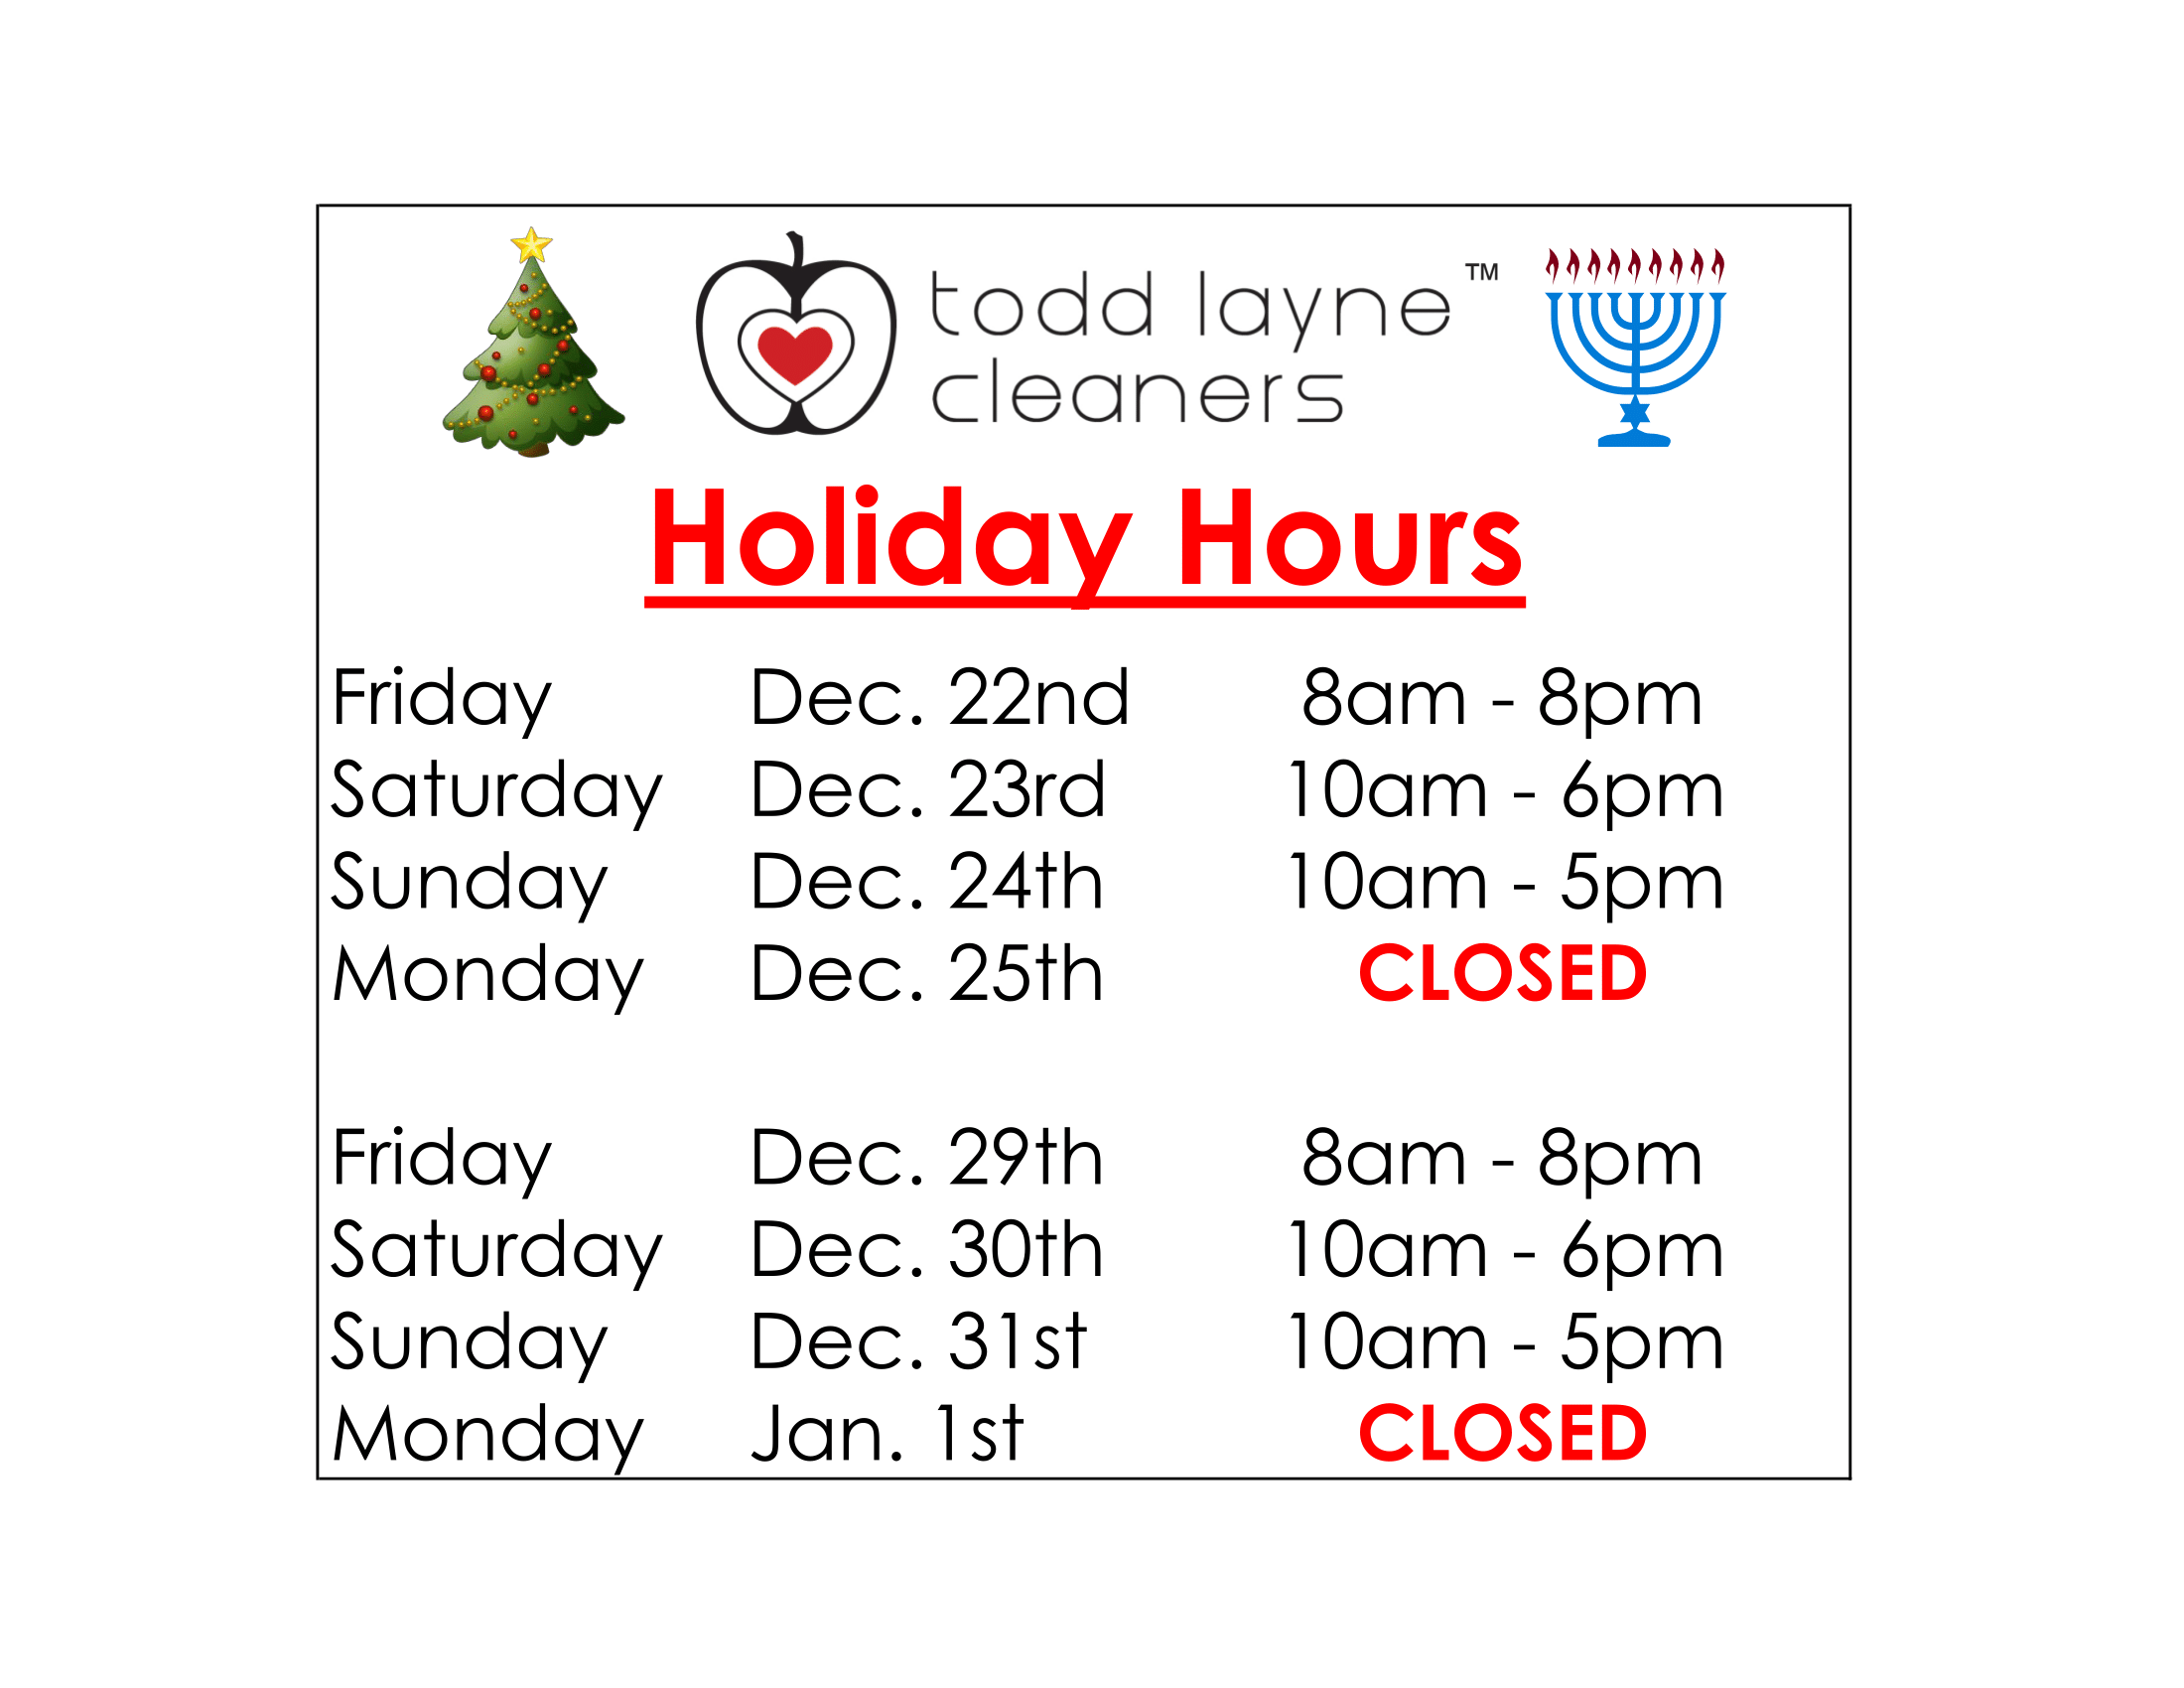 Todd Layne Cleaners Christmas and New Years Eve Hours